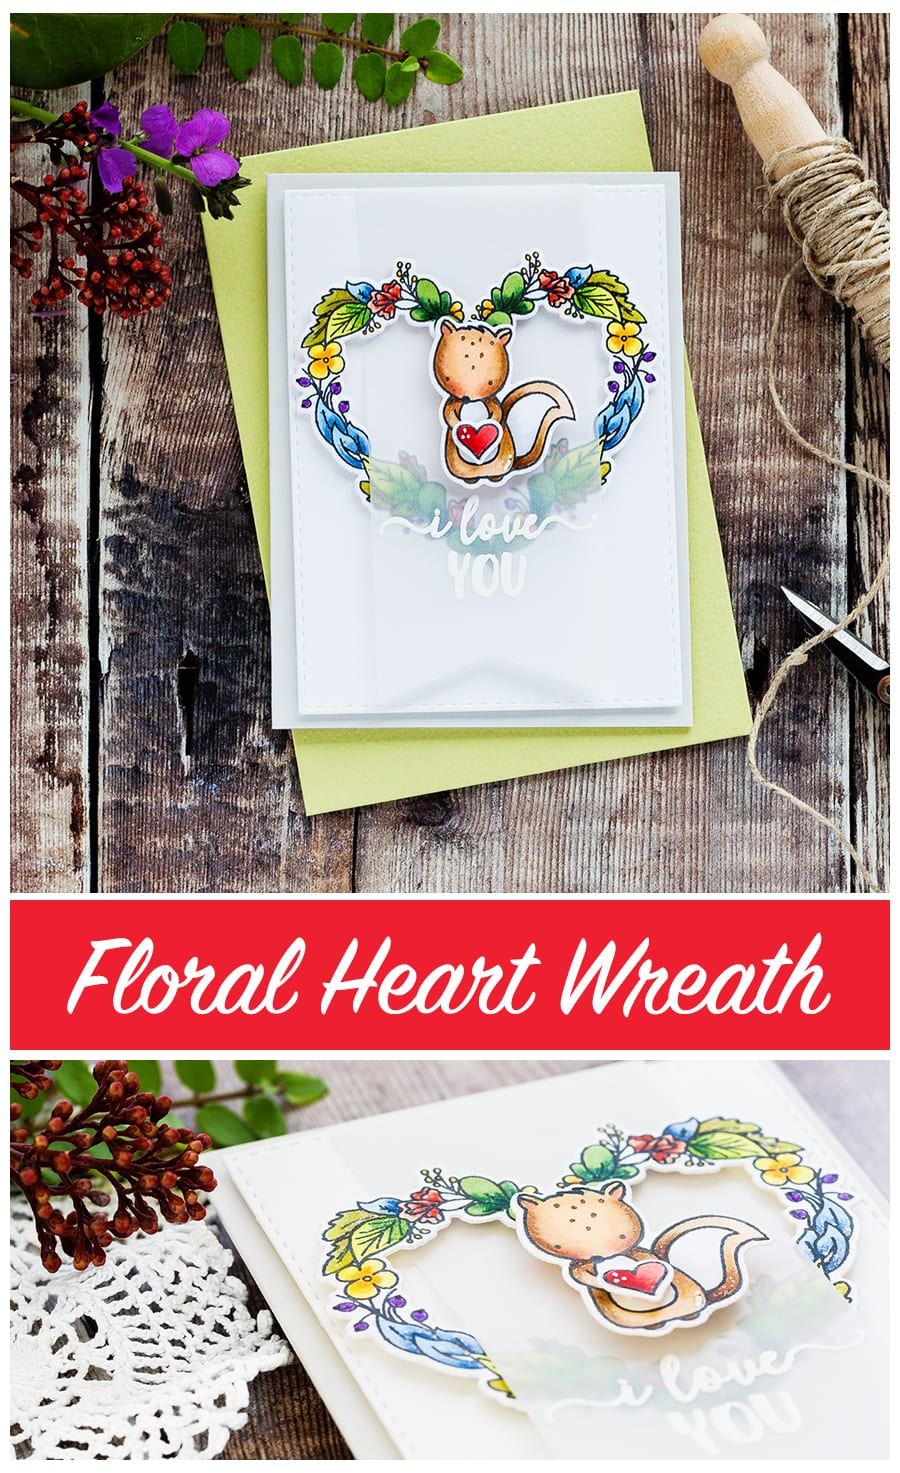 Floral heart wreath card by Debby Hughes. Find out more by clicking on the following link: http://limedoodledesign.com/2017/01/floral-heart-wreath/